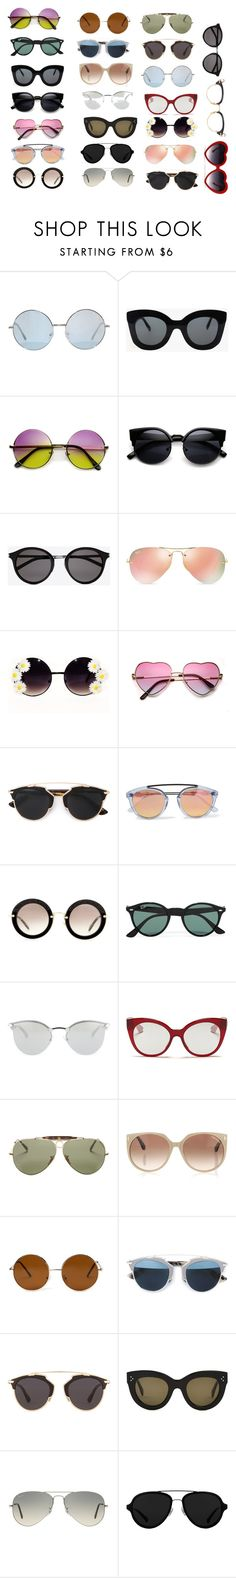 """""""Untitled #131"""" by softic-23 ❤ liked on Polyvore featuring CÉLINE, Yves Saint Laurent, Ray-Ban, Christian Dior, Westward Leaning, Miu Miu, Fendi, Tom Ford, Forever 21 and 3.1 Phillip Lim"""